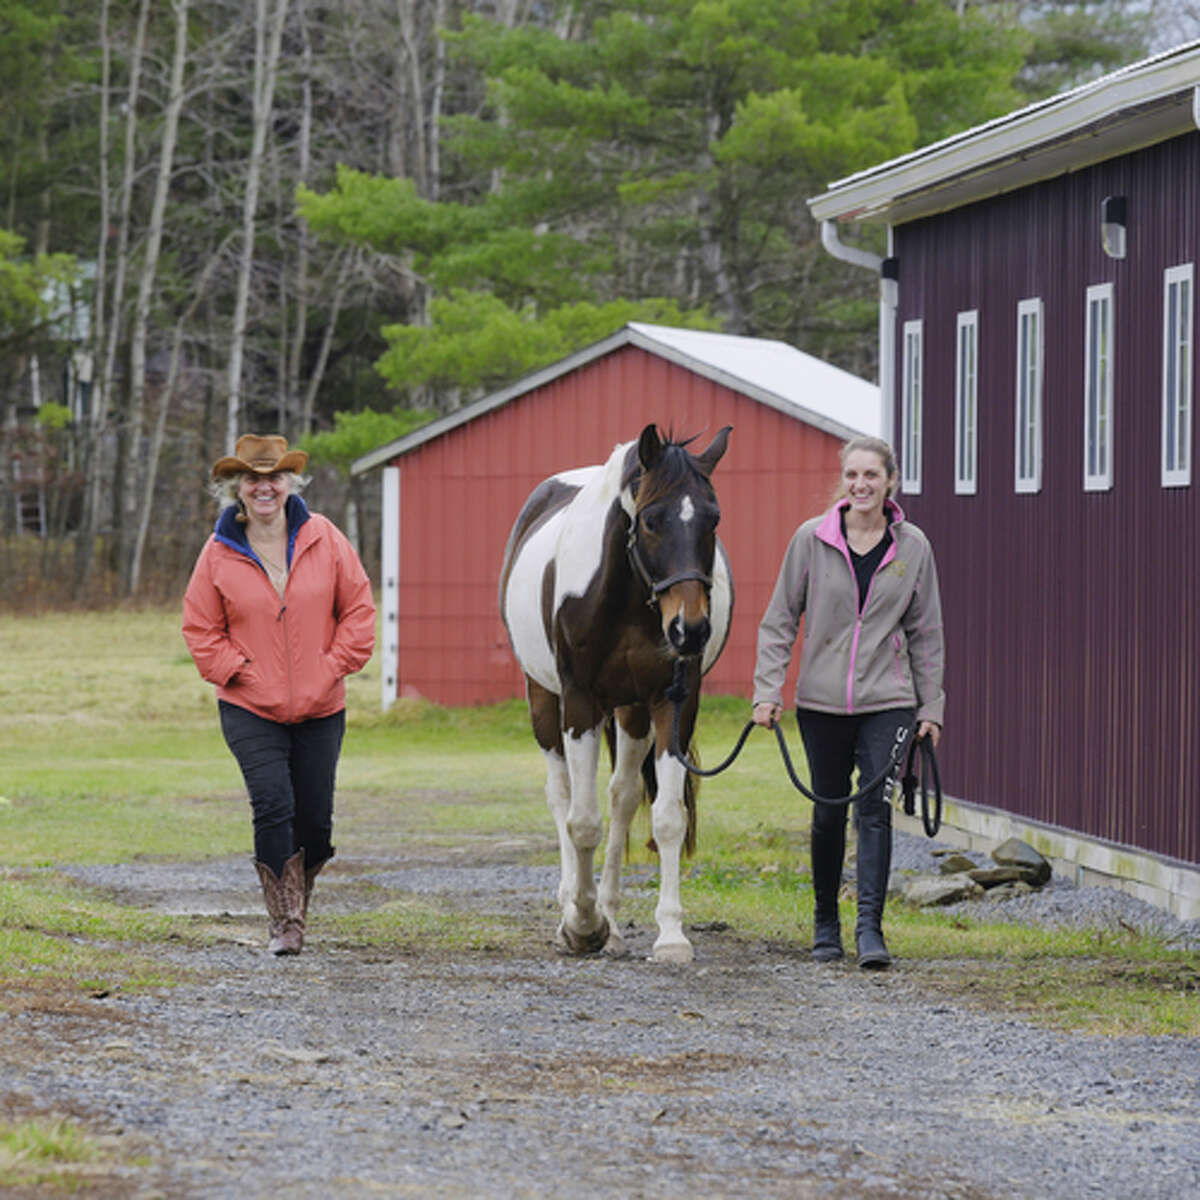 Kate Connor, left, owner of Cross Creek Equestrian Center, and her daughter, Emma Connor, owner of Topline Sporthorses, walk with Boomer at their horse farm on Thursday, Nov. 12, 2020, in Sloansville, N.Y. (Paul Buckowski/Times Union)